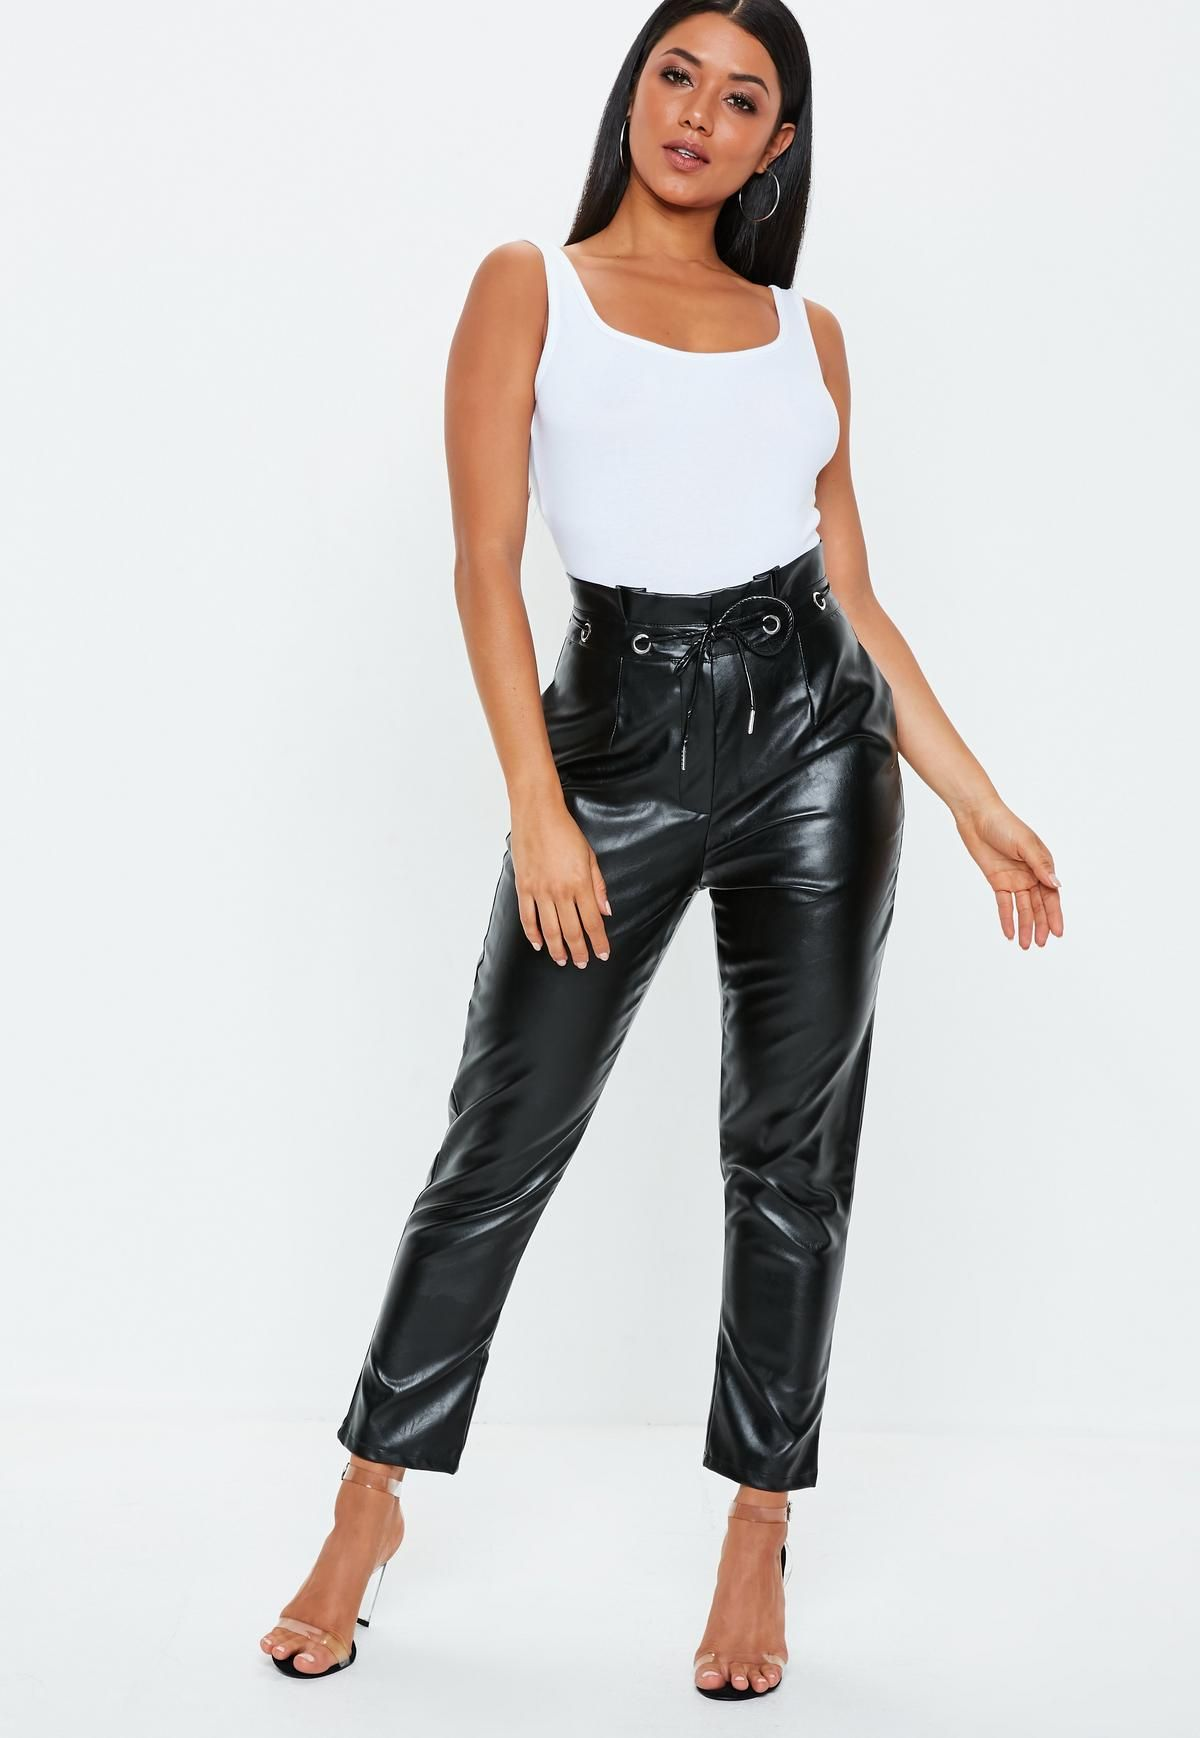 Black Paperbag Tie Waist Faux Leather Pants   Missguided   latex ... 435a18cc26